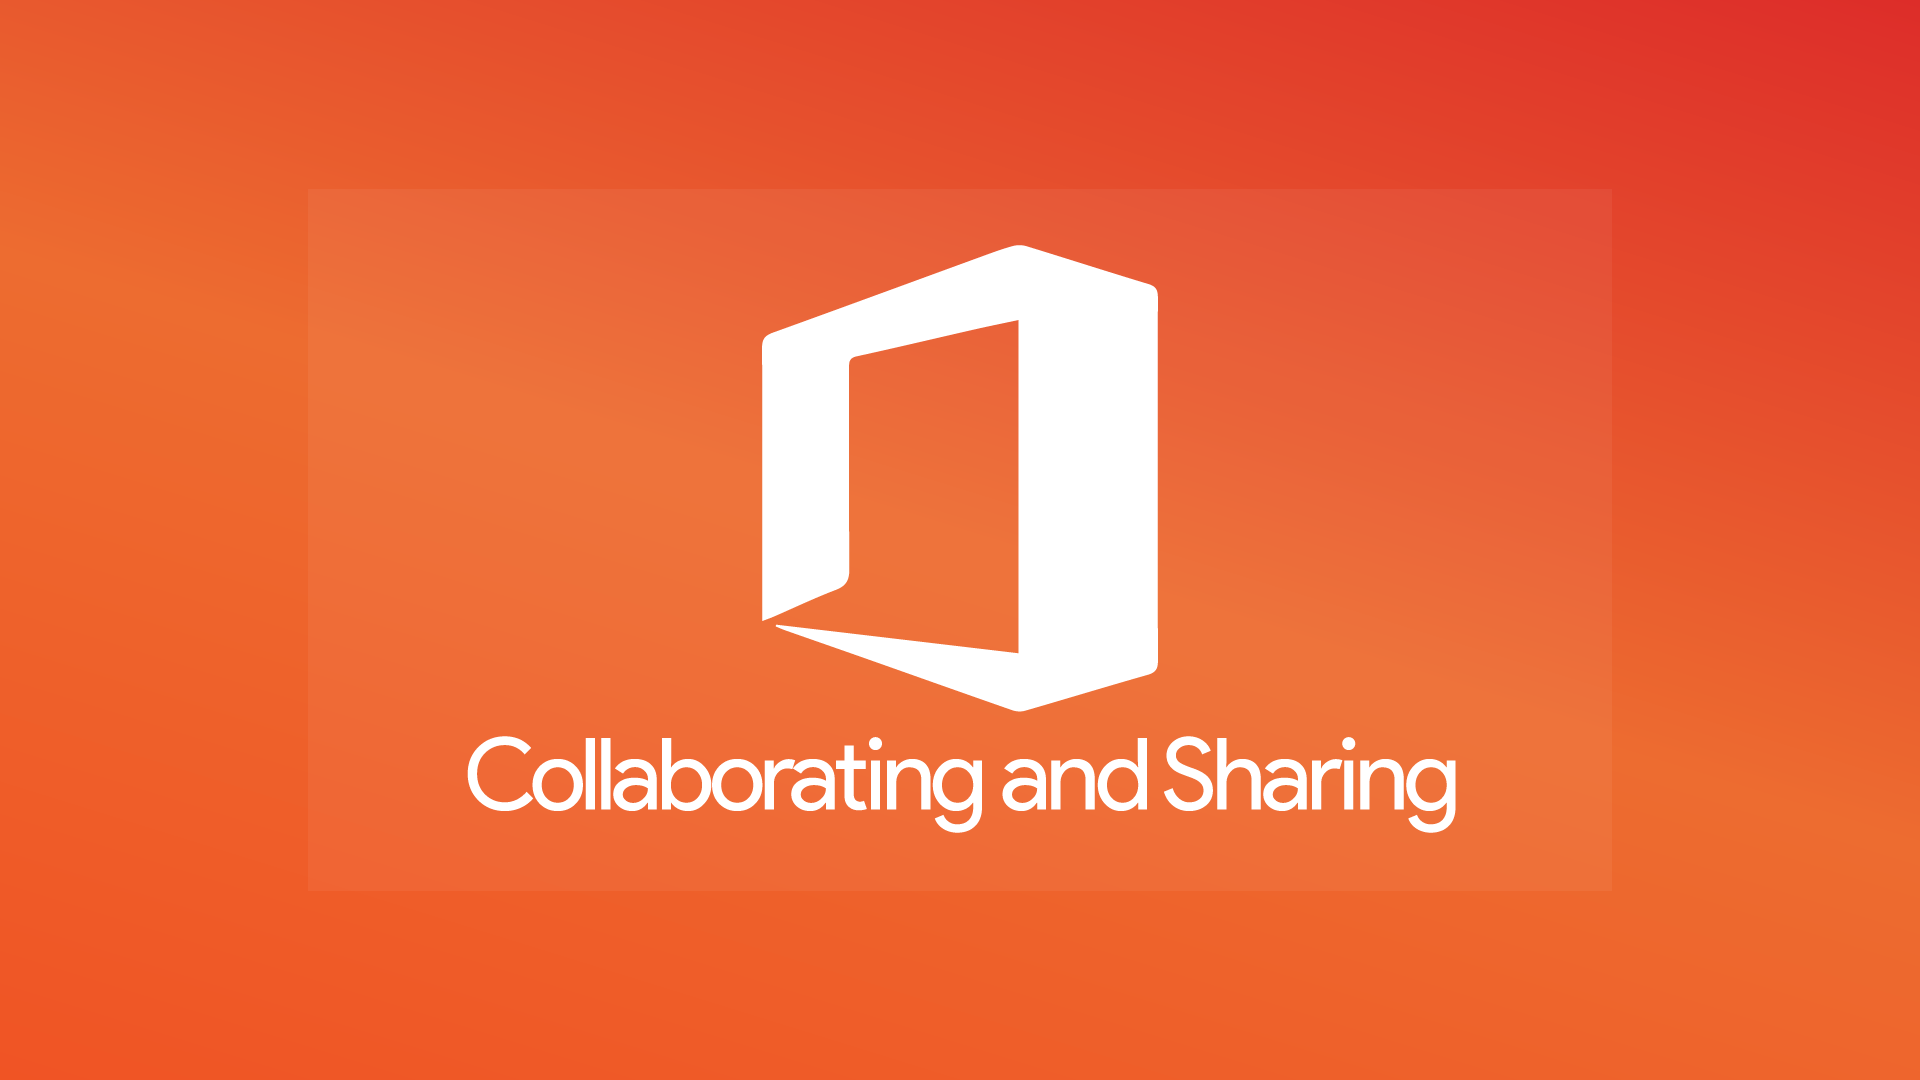 Collaborating and Sharing Using Office 365